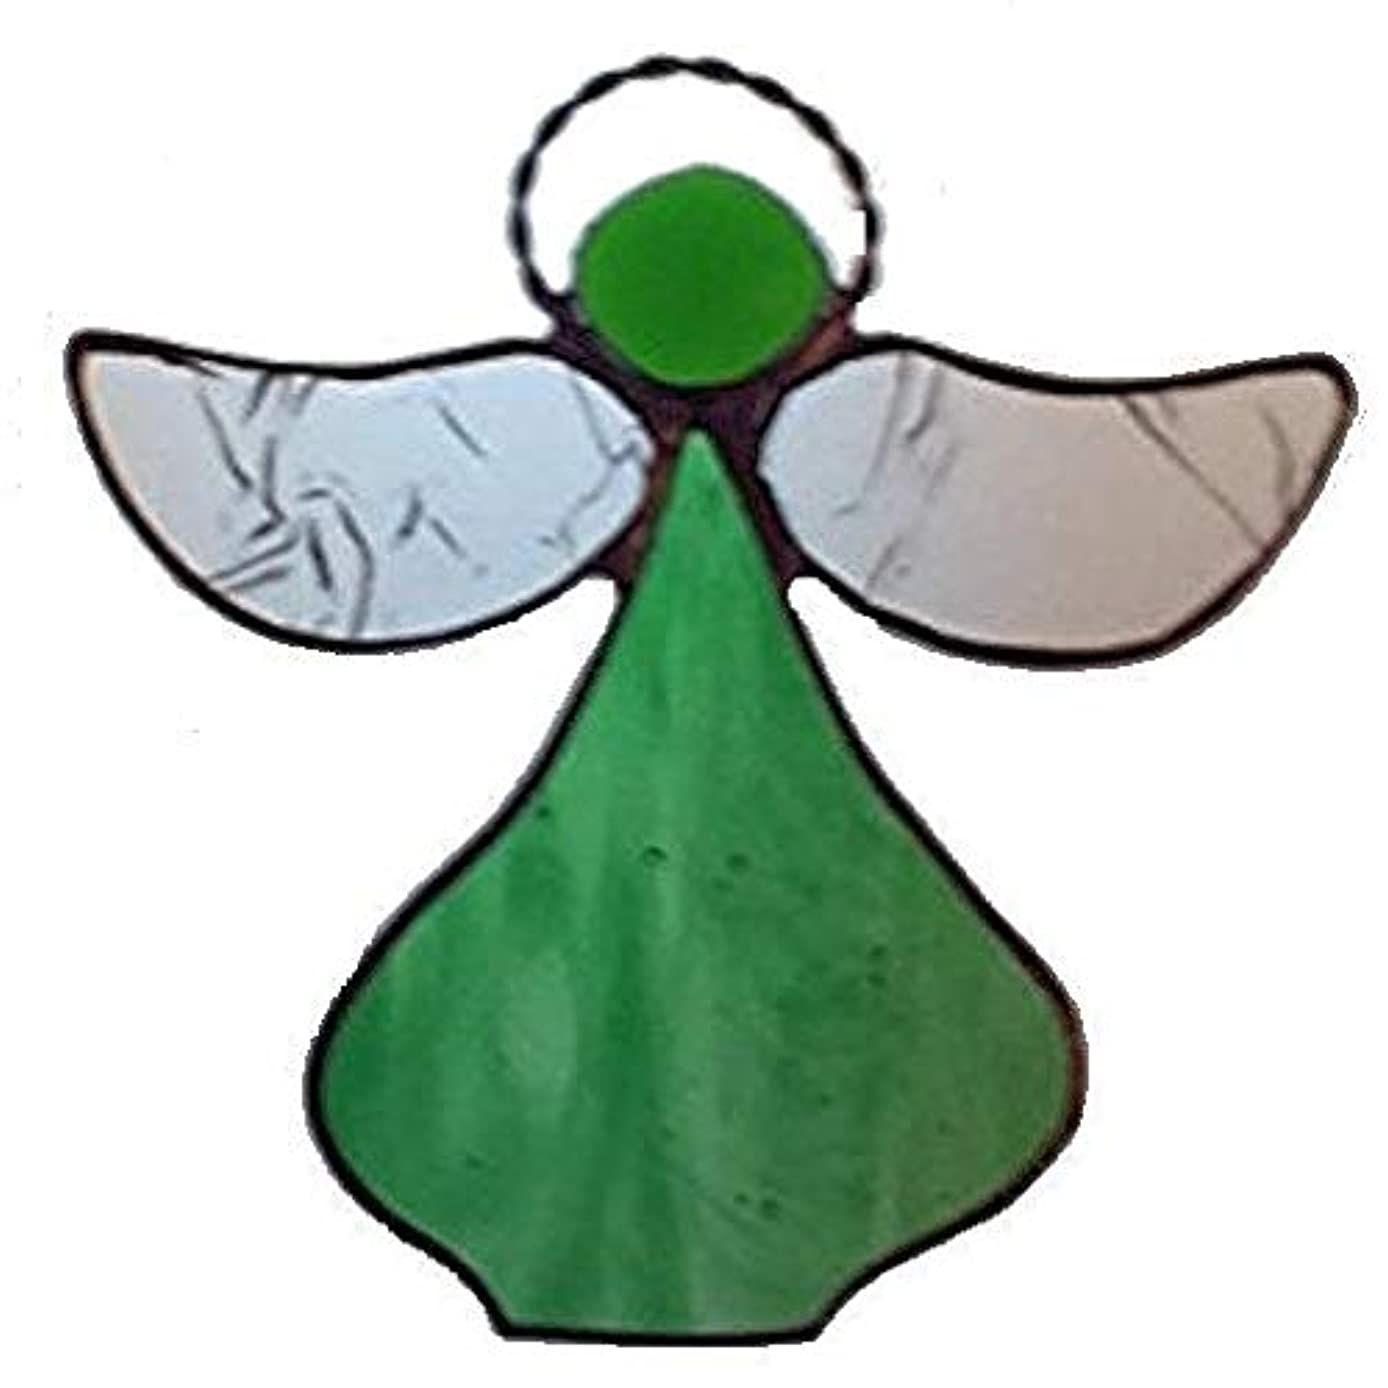 Artic Fox Handcrafted Angel (Green) Suncatcher Stained Glass Ornament